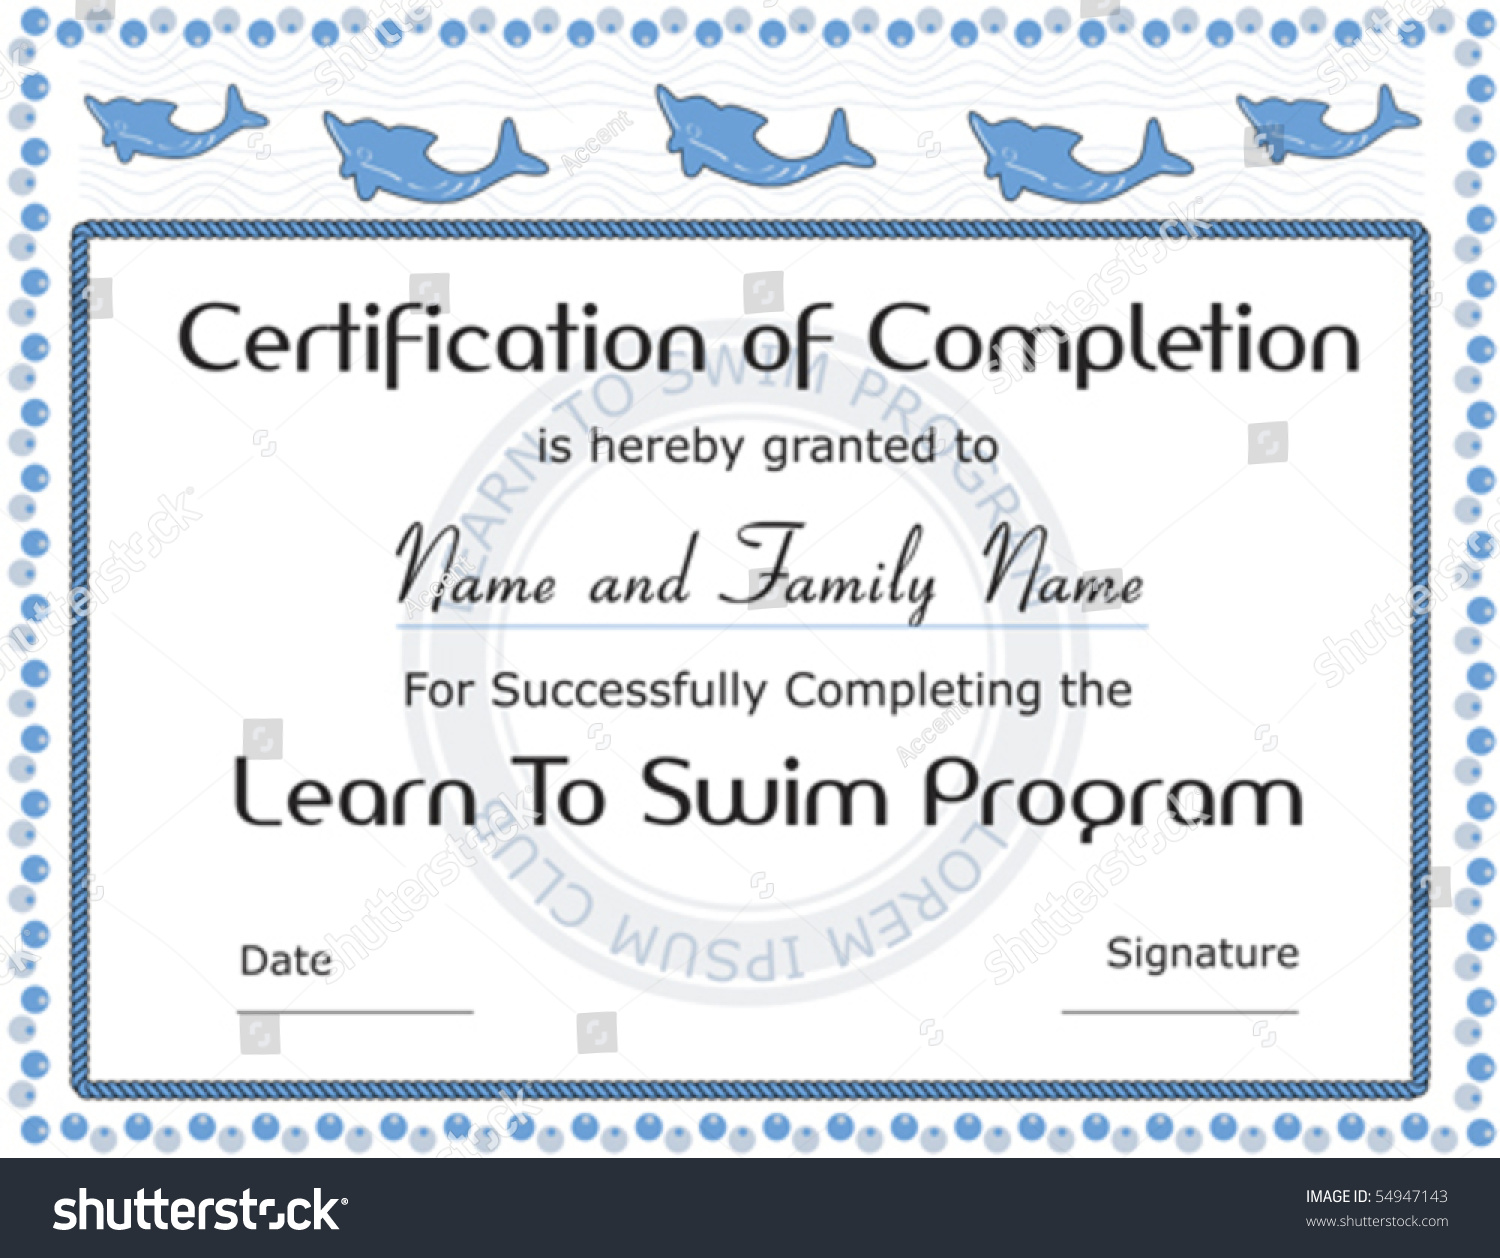 Certificate Of Completion Sample Certificate Of Completion – Certificate of Completion Sample